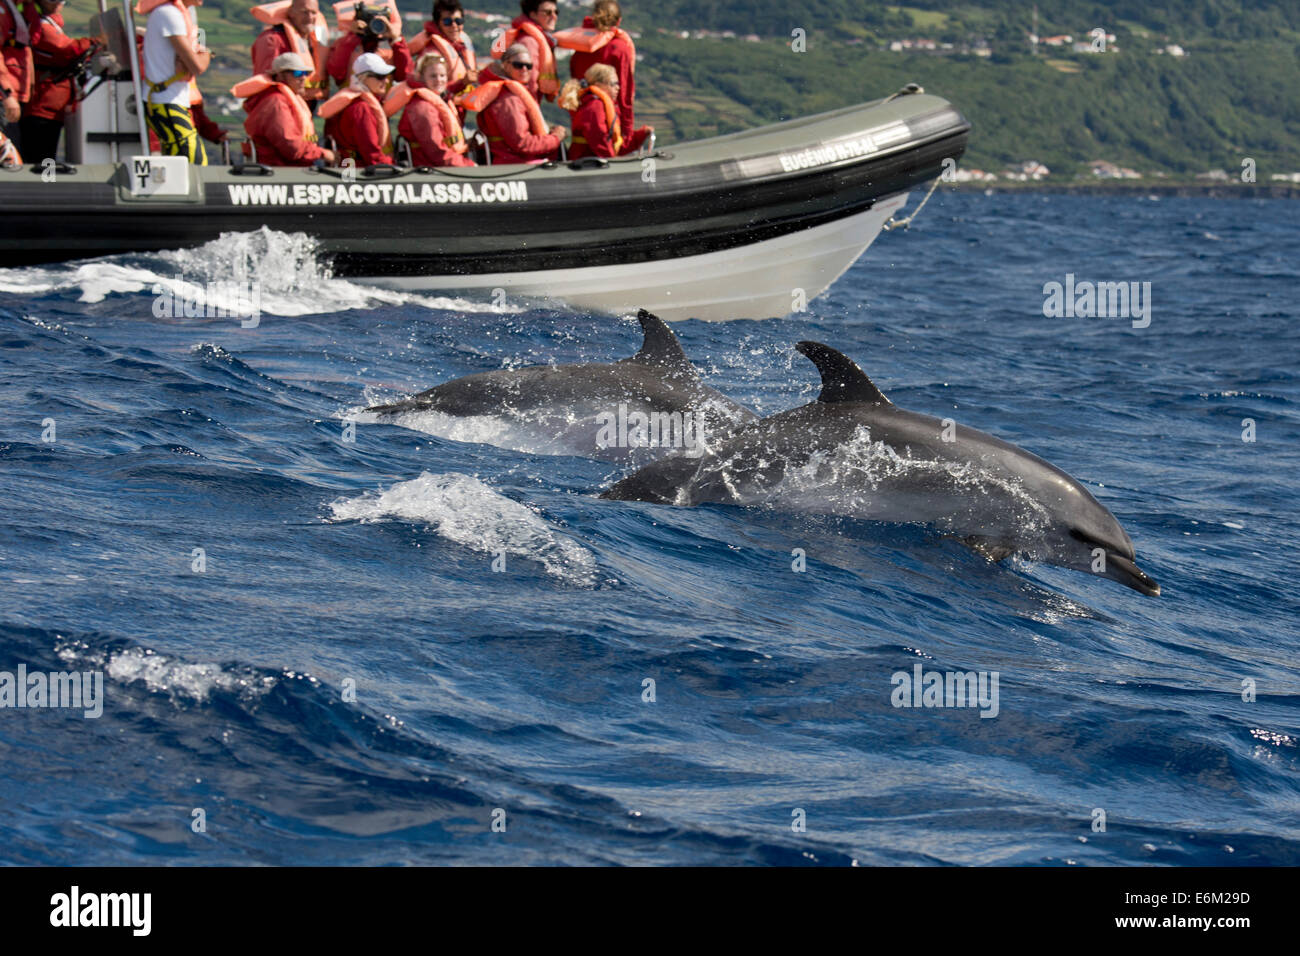 Tourists watch an Atlantic Spotted Dolphin (Stenella frontalis) during a Whale-Watching trip. Azores, Atlantic Ocean. - Stock Image